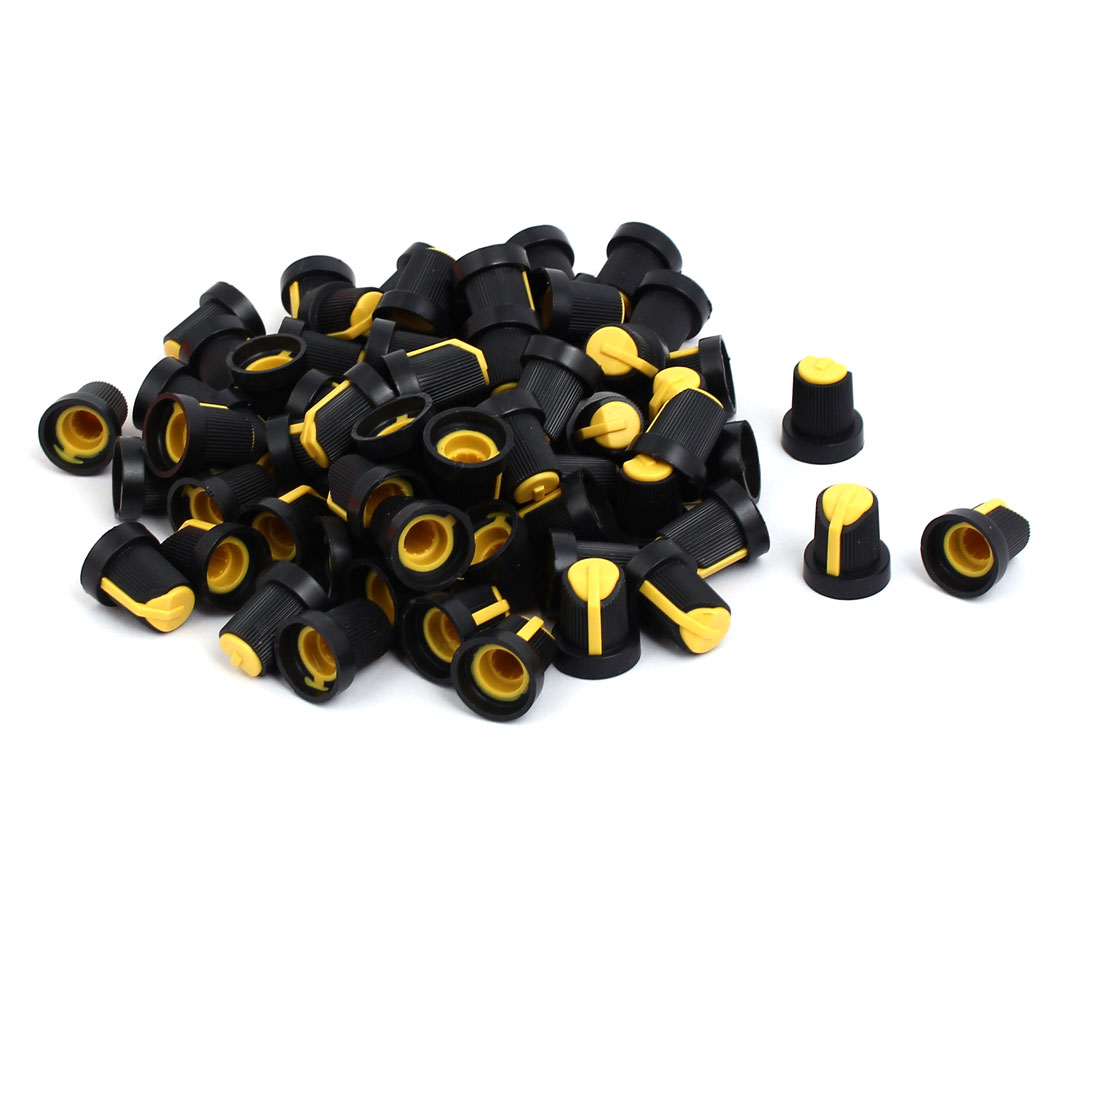 6mm Shaft Hole Diameter Potentiometer Volume Control Rotary Knobs Black Yellow 100 Pcs